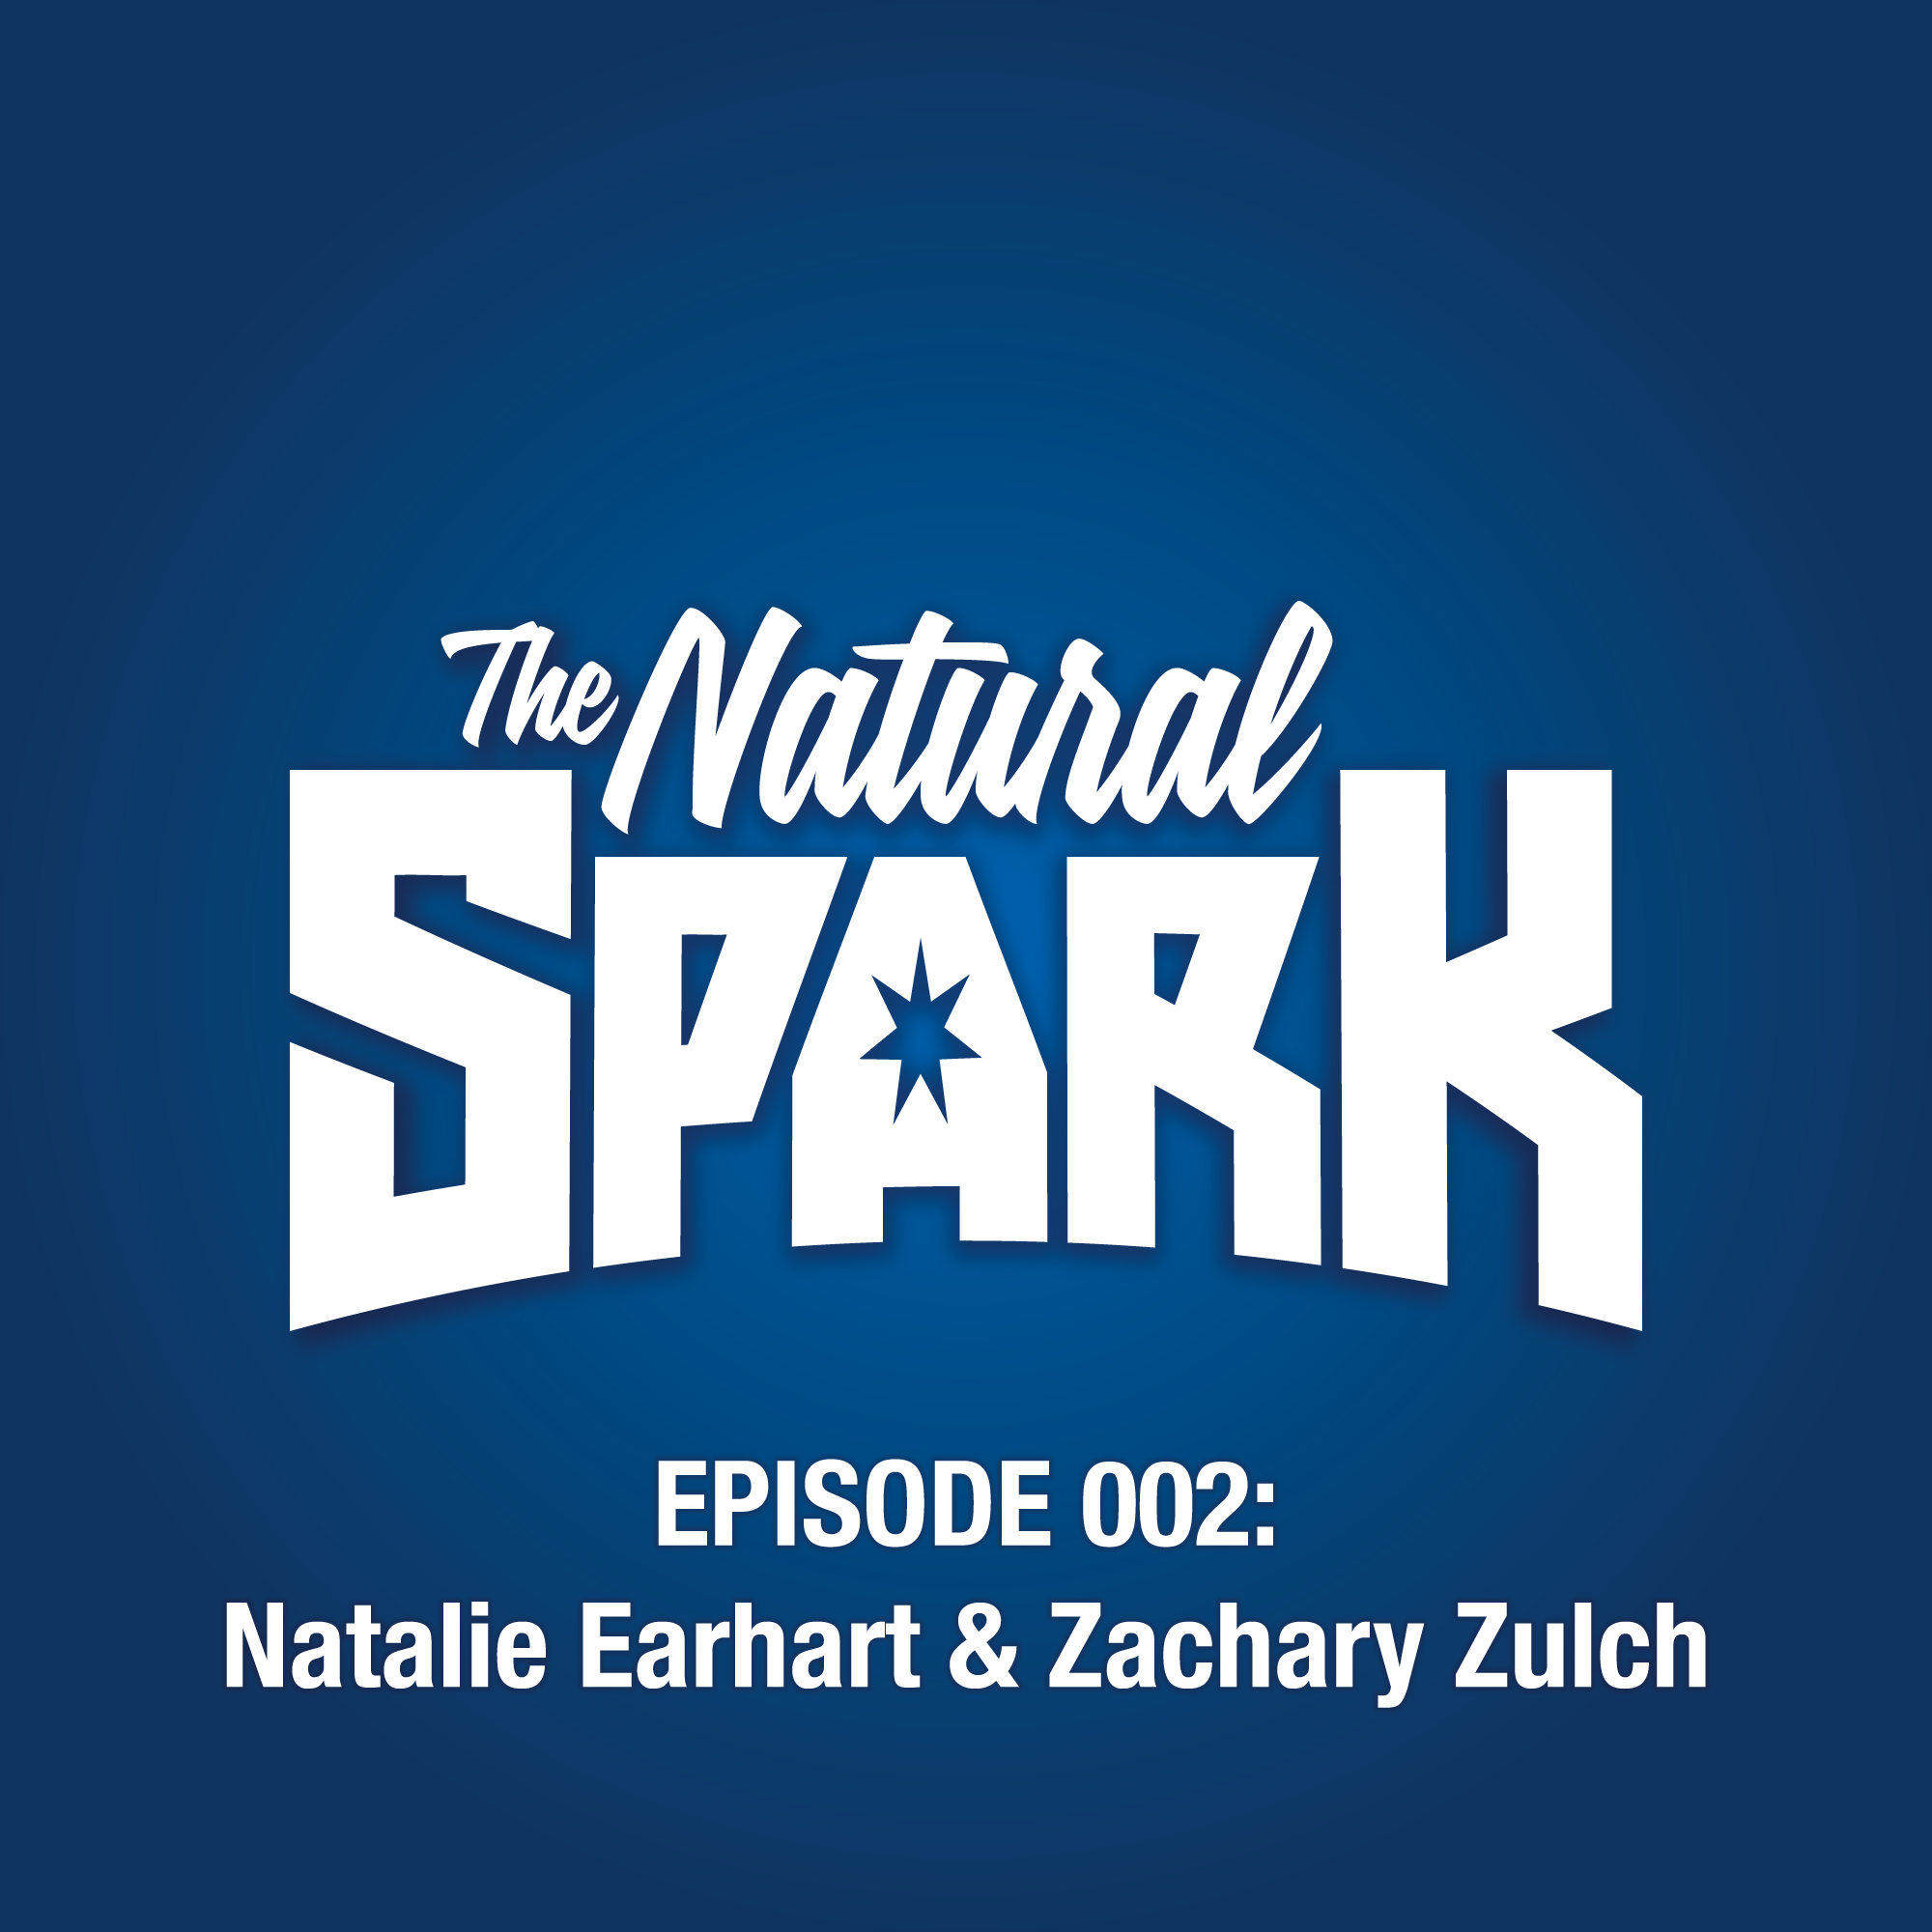 The Natural Spark - Episode 002: Natalie Earhart & Zachary Zulch